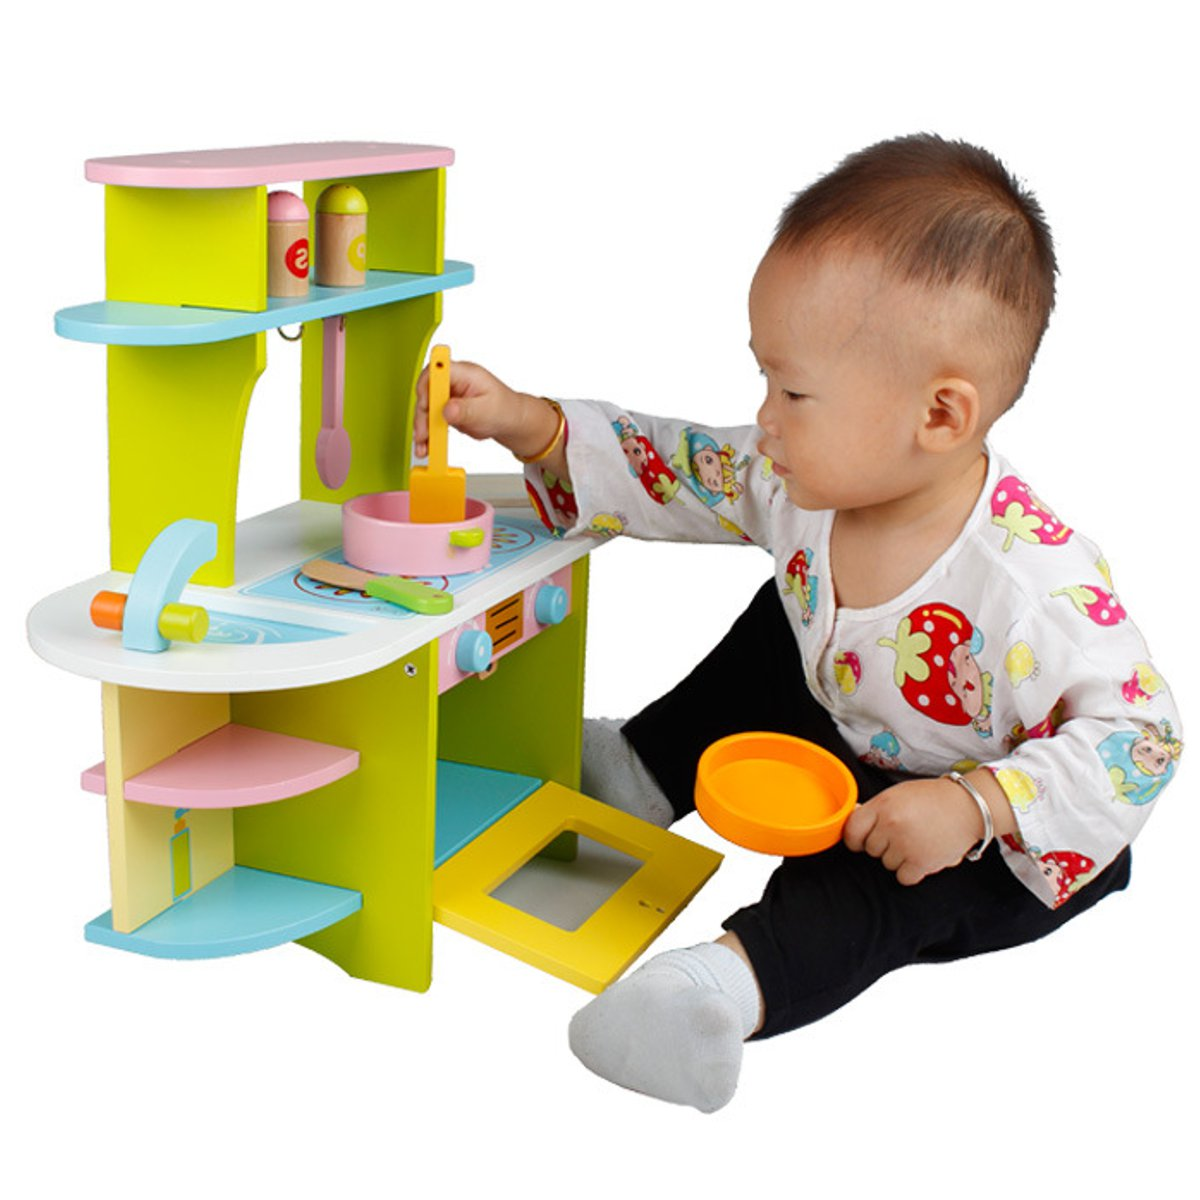 Baby Miniature Kitchen Wooden Pretend Play Food Children Kids Toys for Girls Boys Simulation Cooking Cookware Kitchen Toys Set